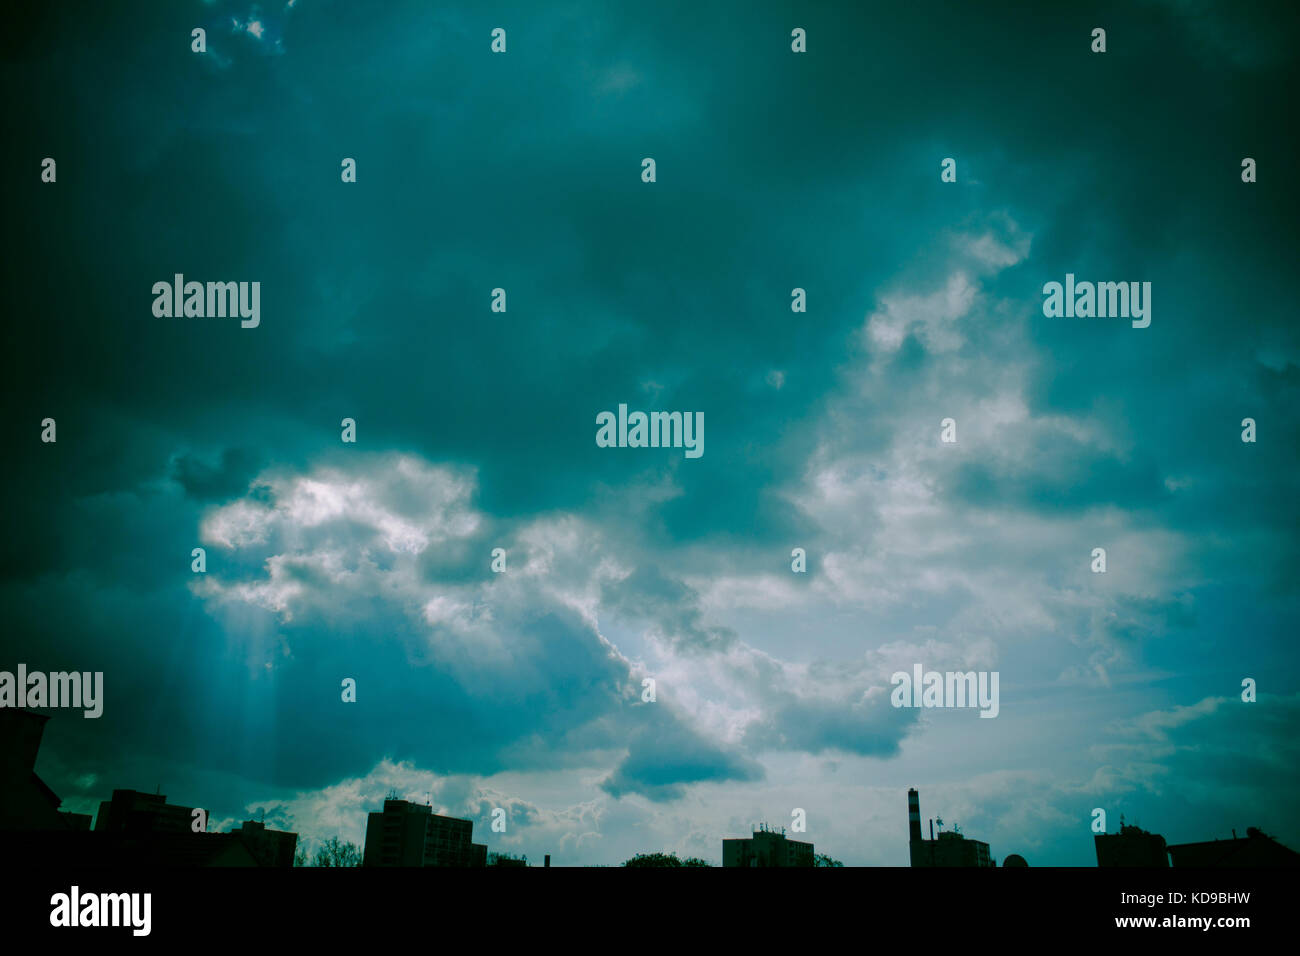 mystical cloudy sky over the city silhouette Stock Photo